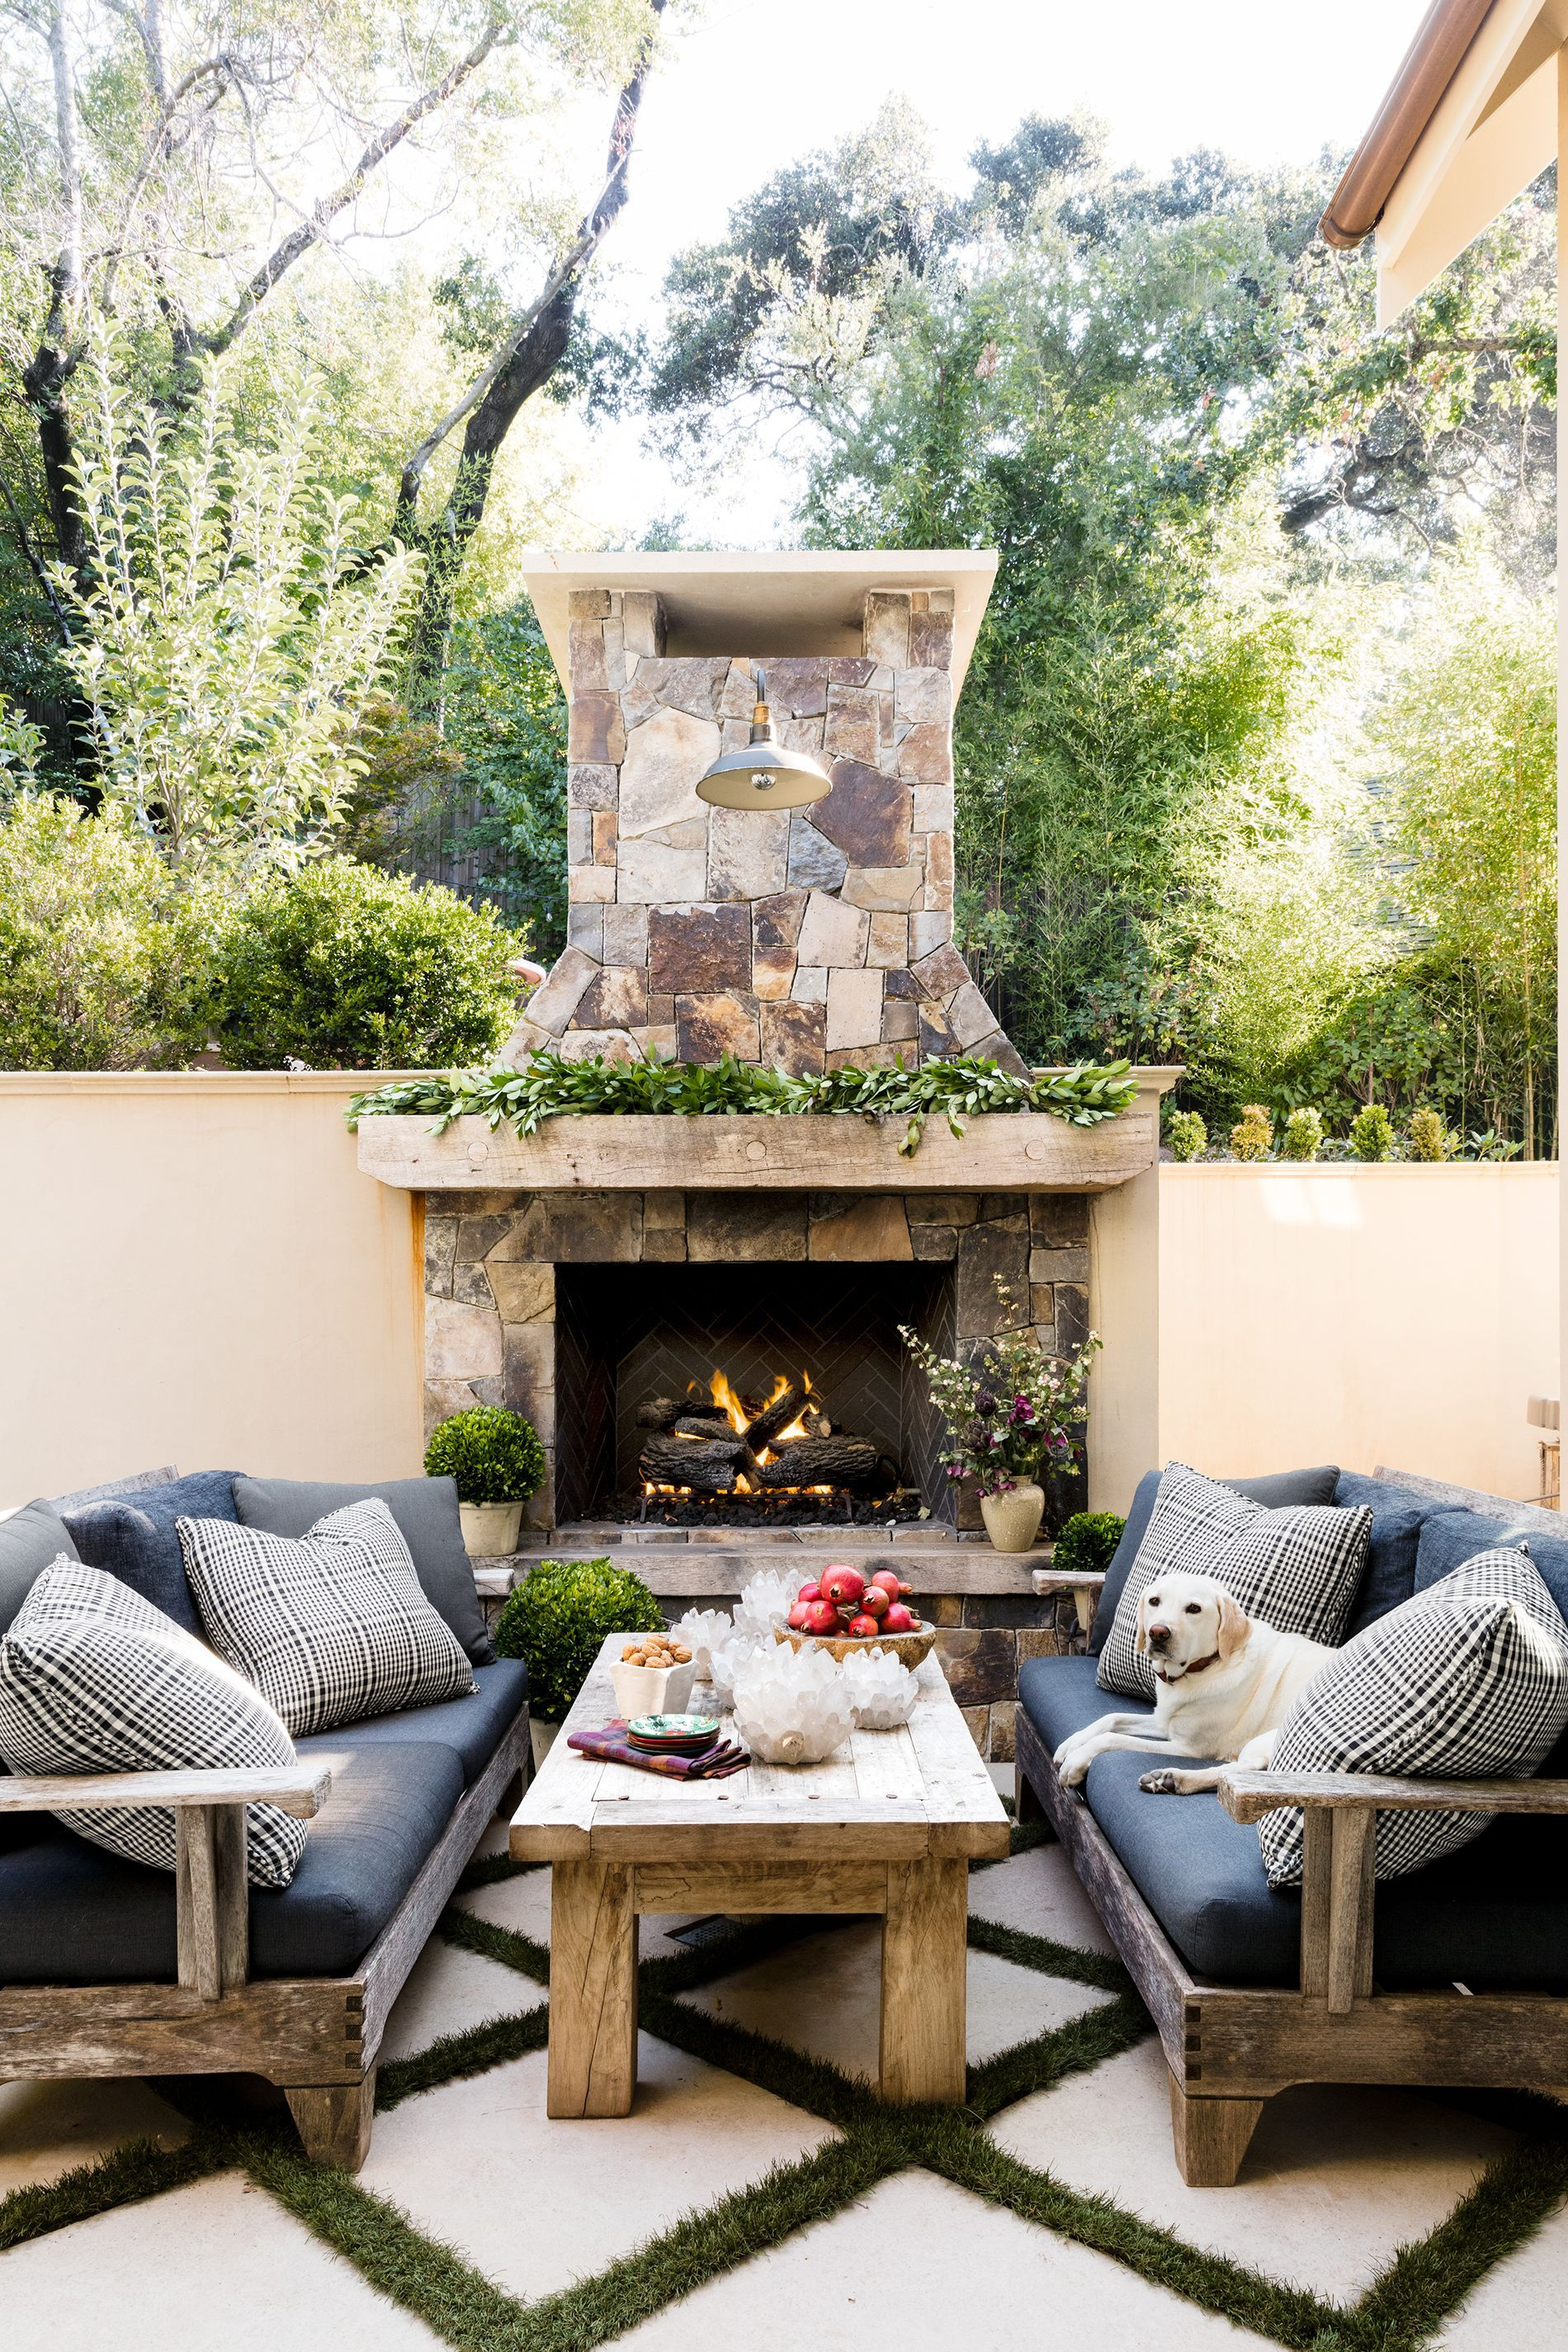 25 Outdoor Fireplace Ideas Outdoor Fireplaces Fire Pits